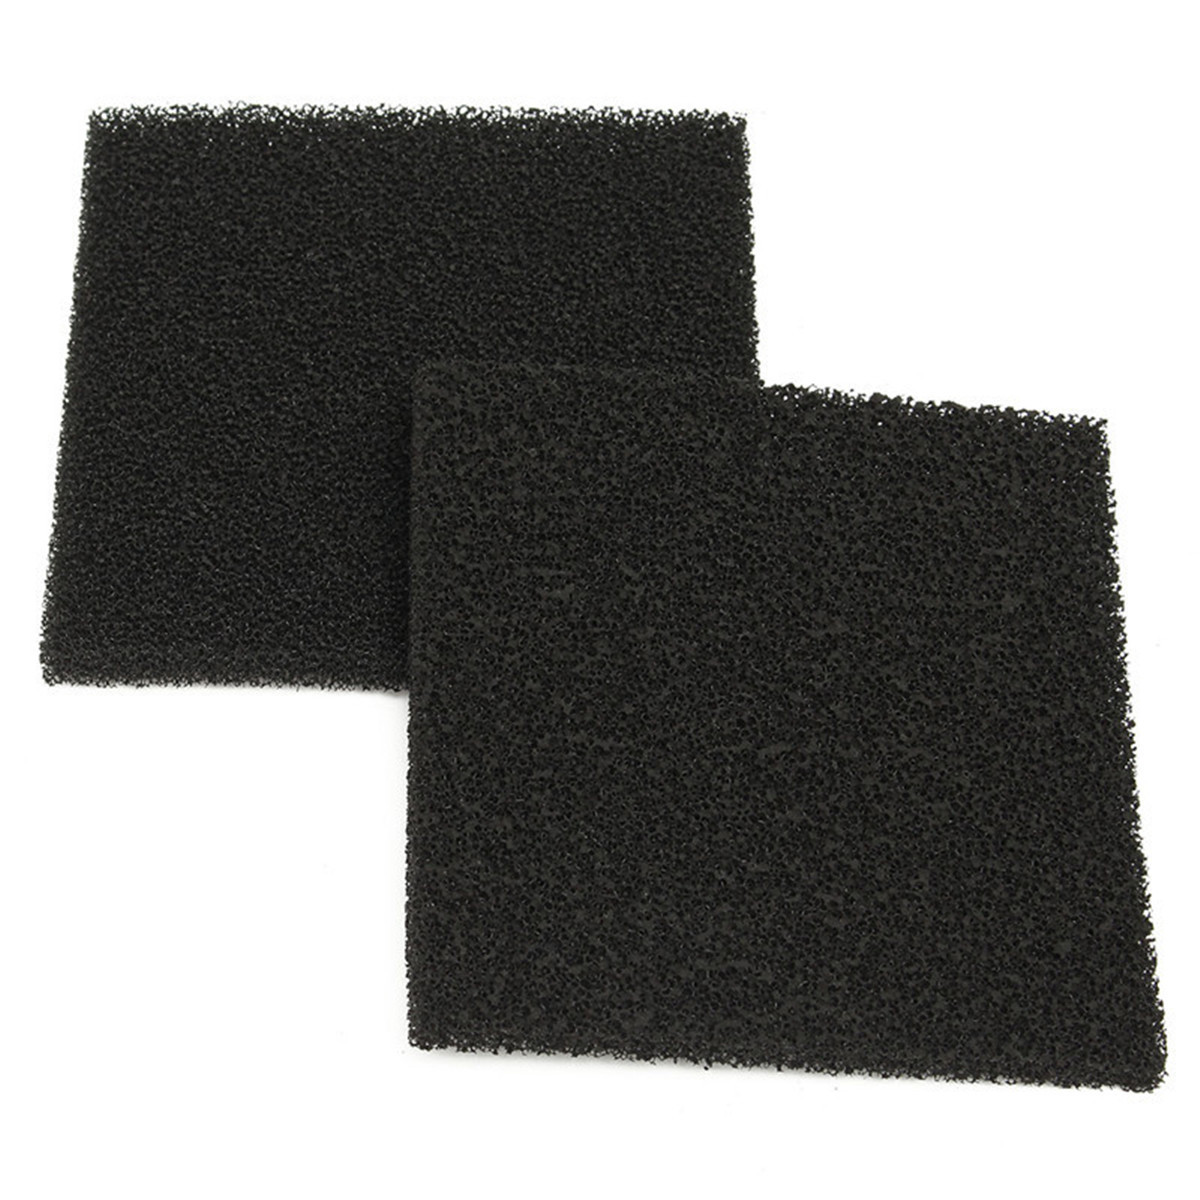 10pcs 28PPI Black Square Activated Carbon Foam Sponge Air Filter Pads Set for Smoke Absorber